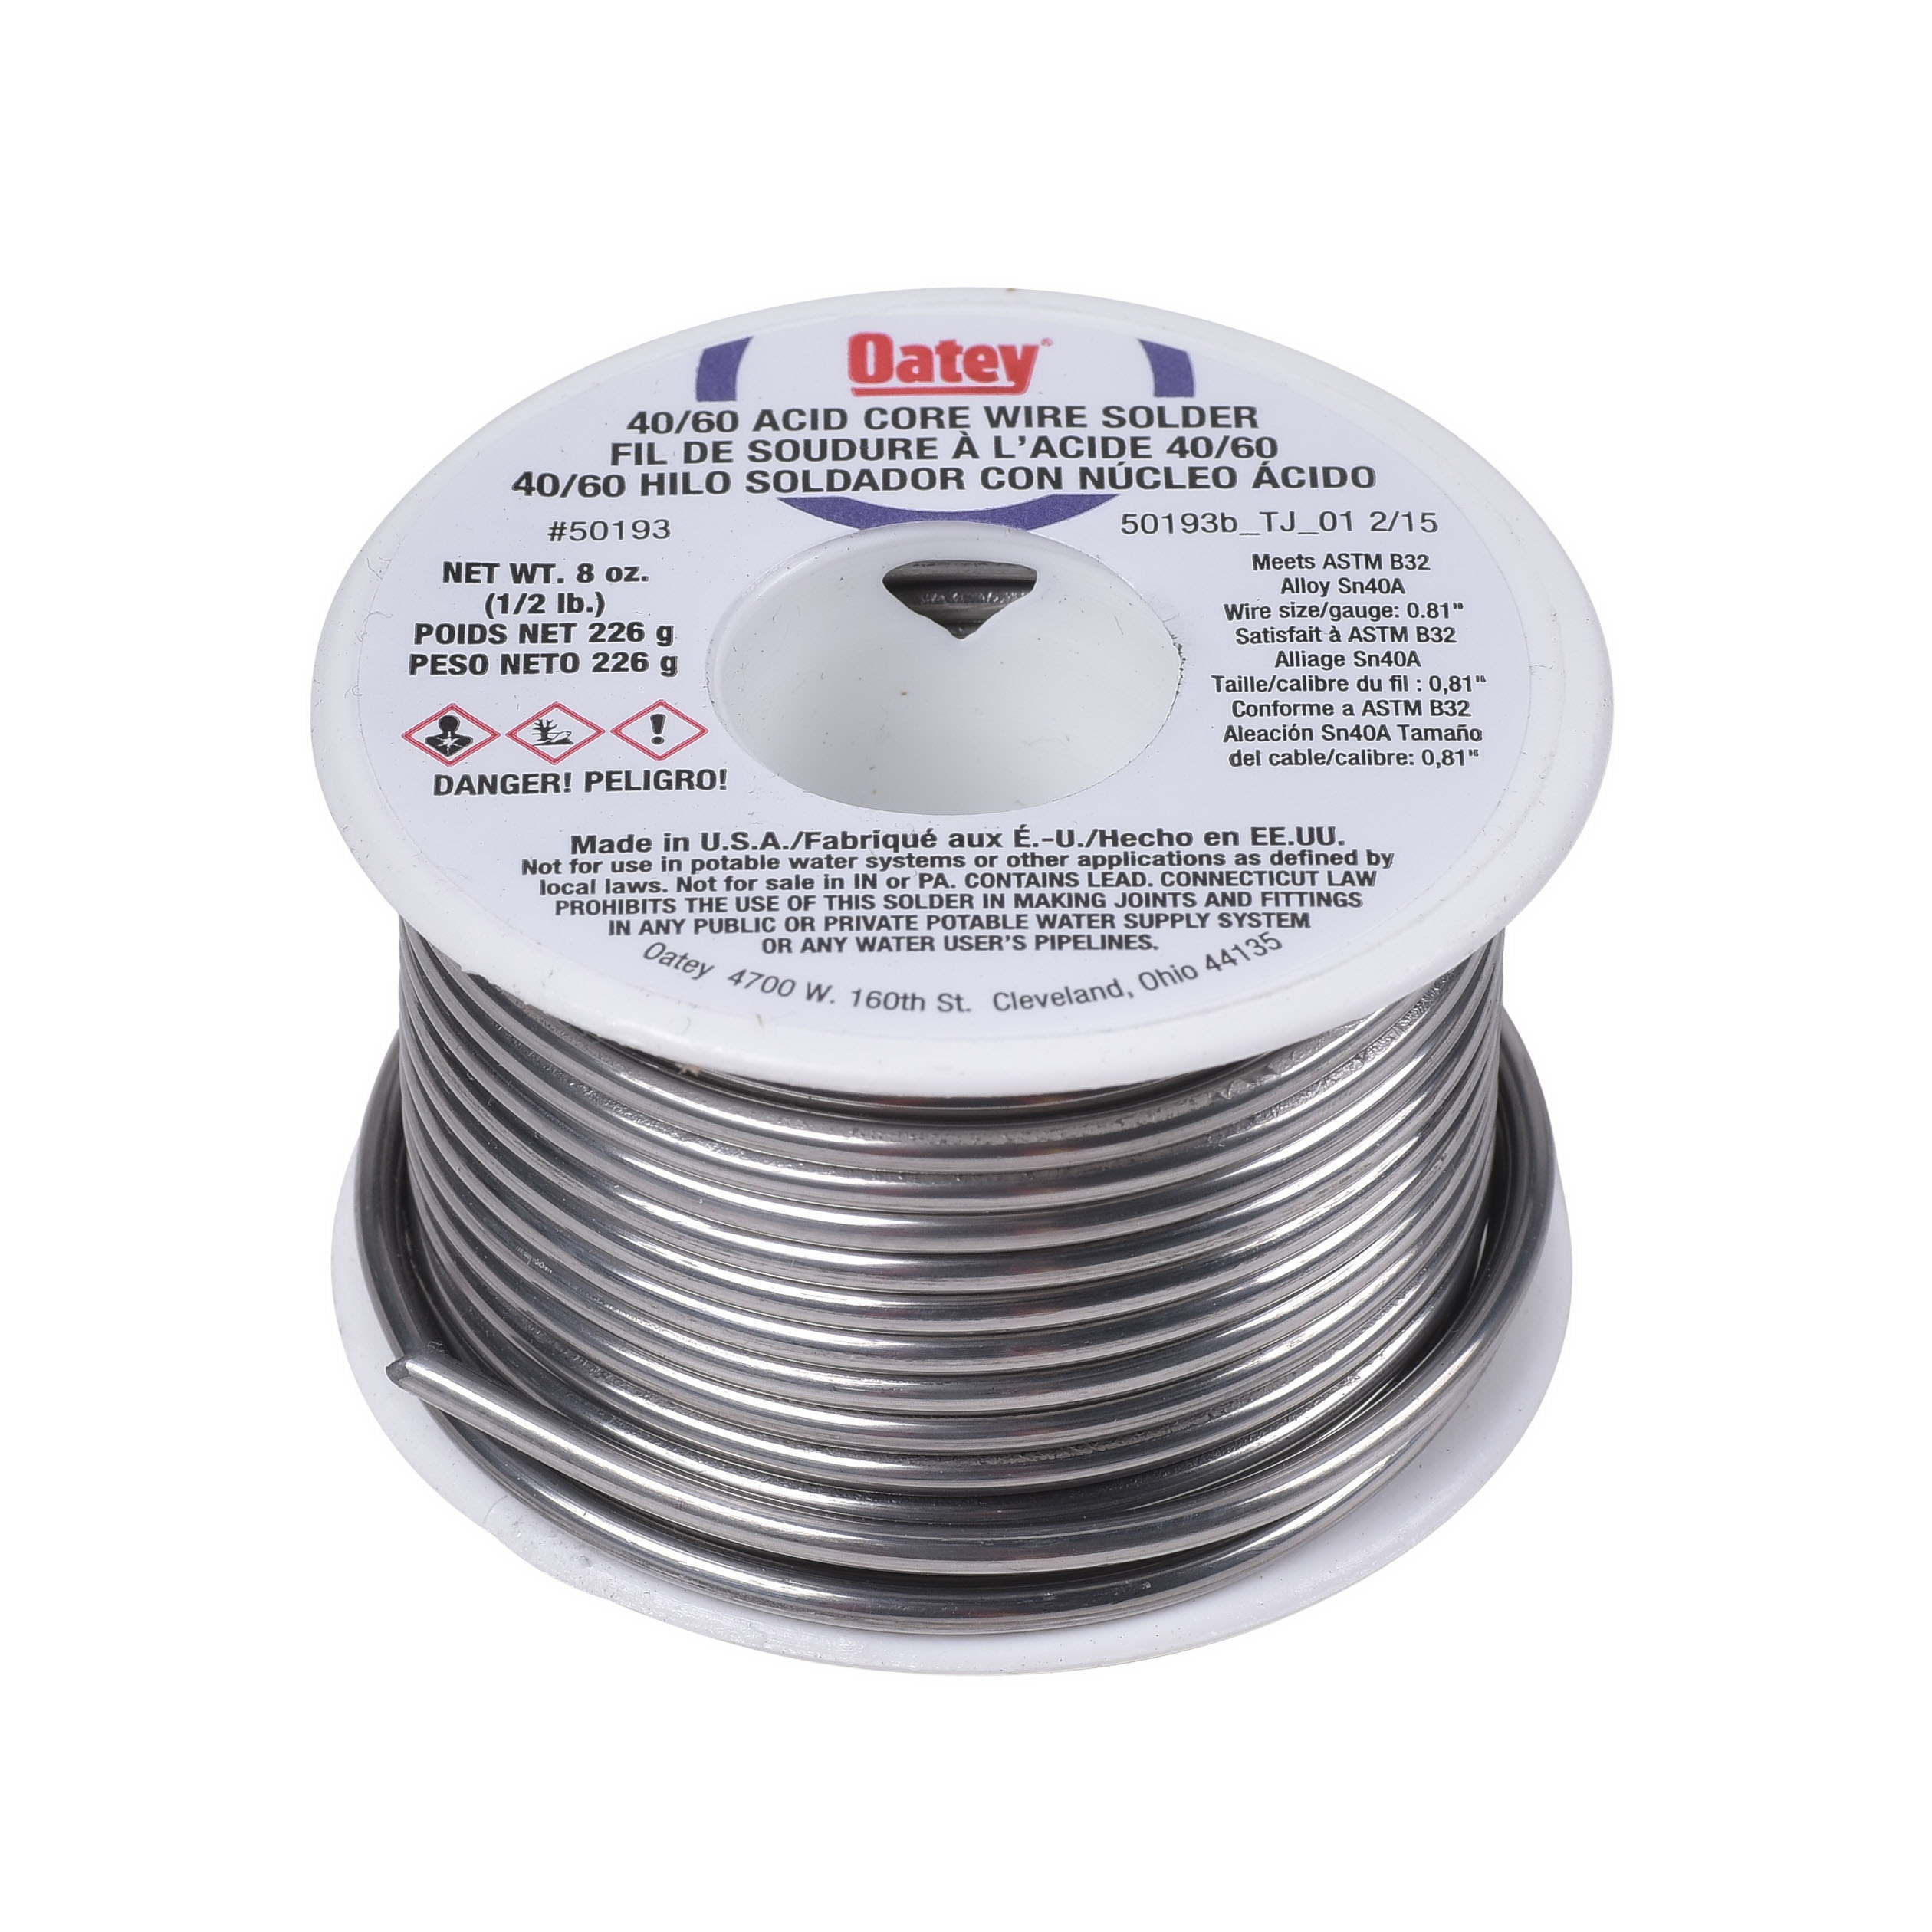 Picture of Oatey 50193 Acid Core Wire Solder, 1/2 lb Package, Solid, Silver, 360 to 460 deg F Melting Point